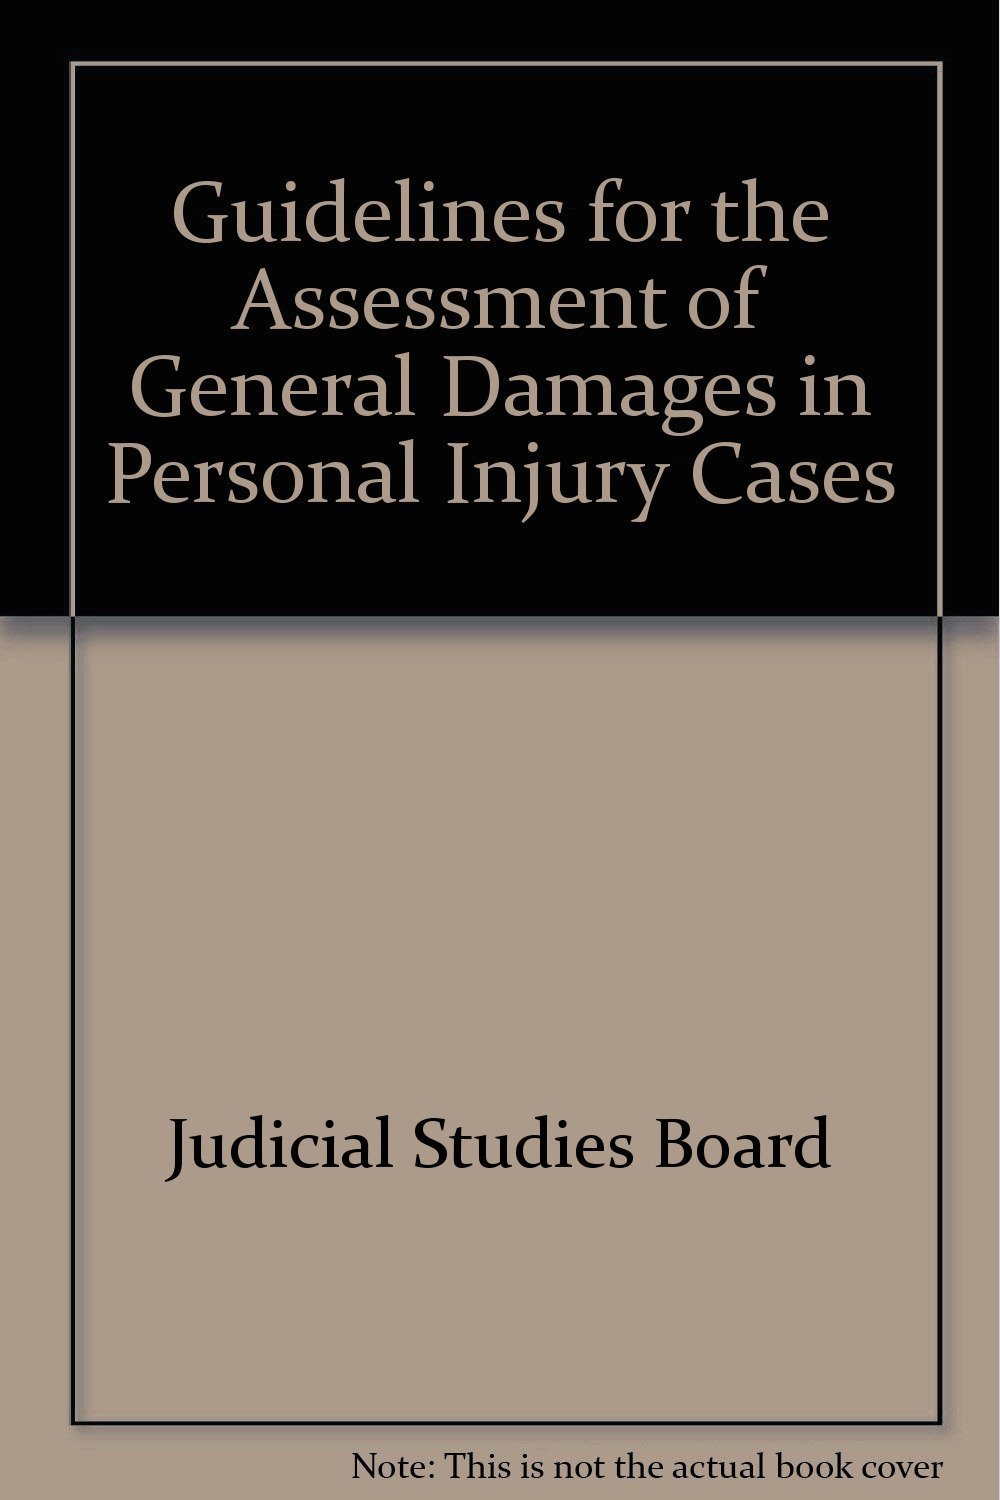 Guidelines for the Assessment of General Damages in Personal Injury Cases:  Amazon.co.uk: Judicial Studies Board: 9781854315779: Books